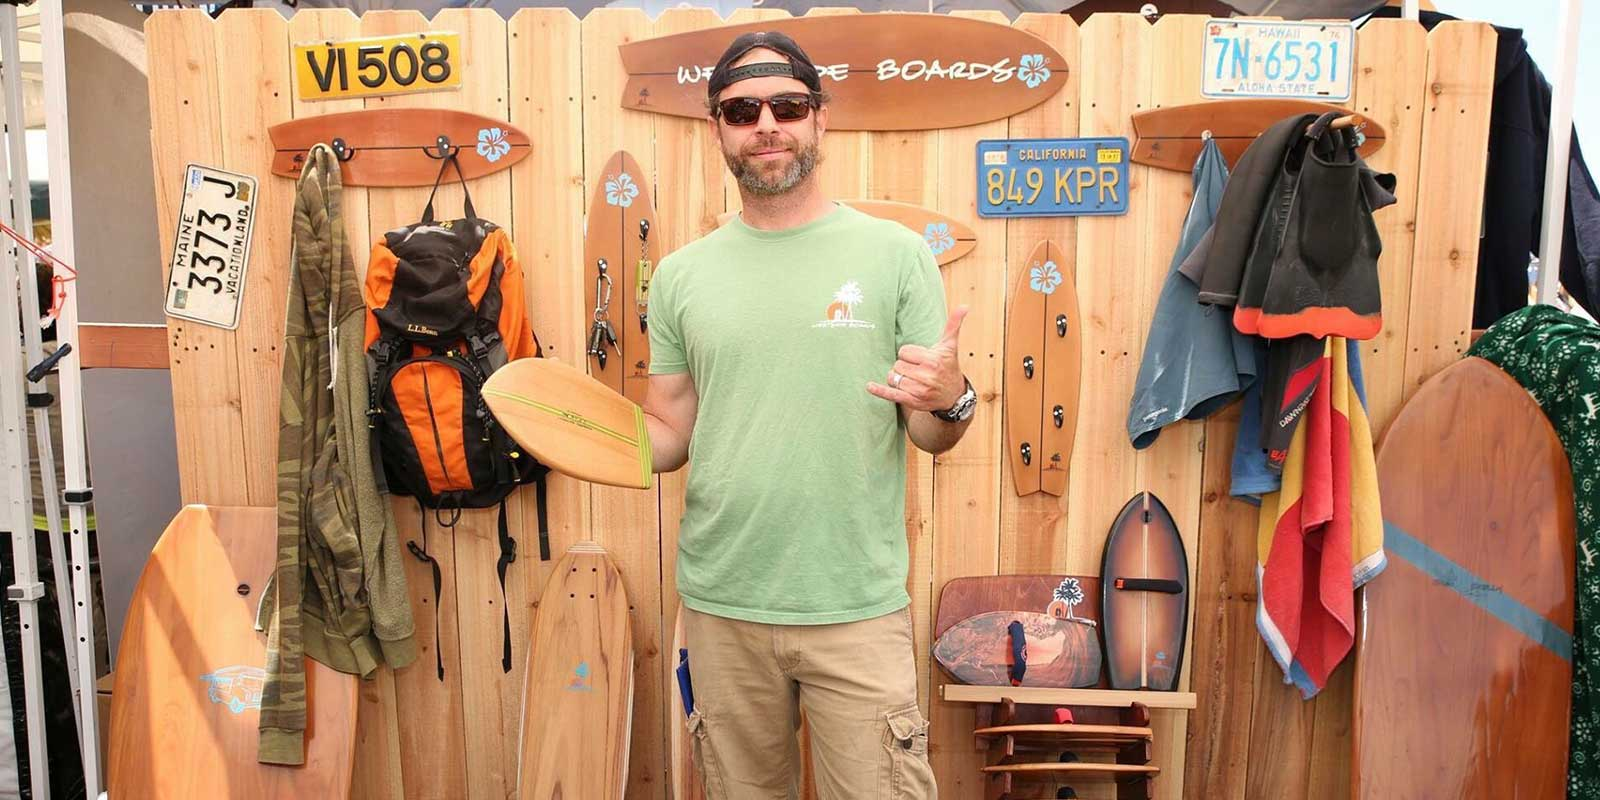 eaa634032a Slyde Founders Spotlight  Adam West of Westside Boards in Ventura CA